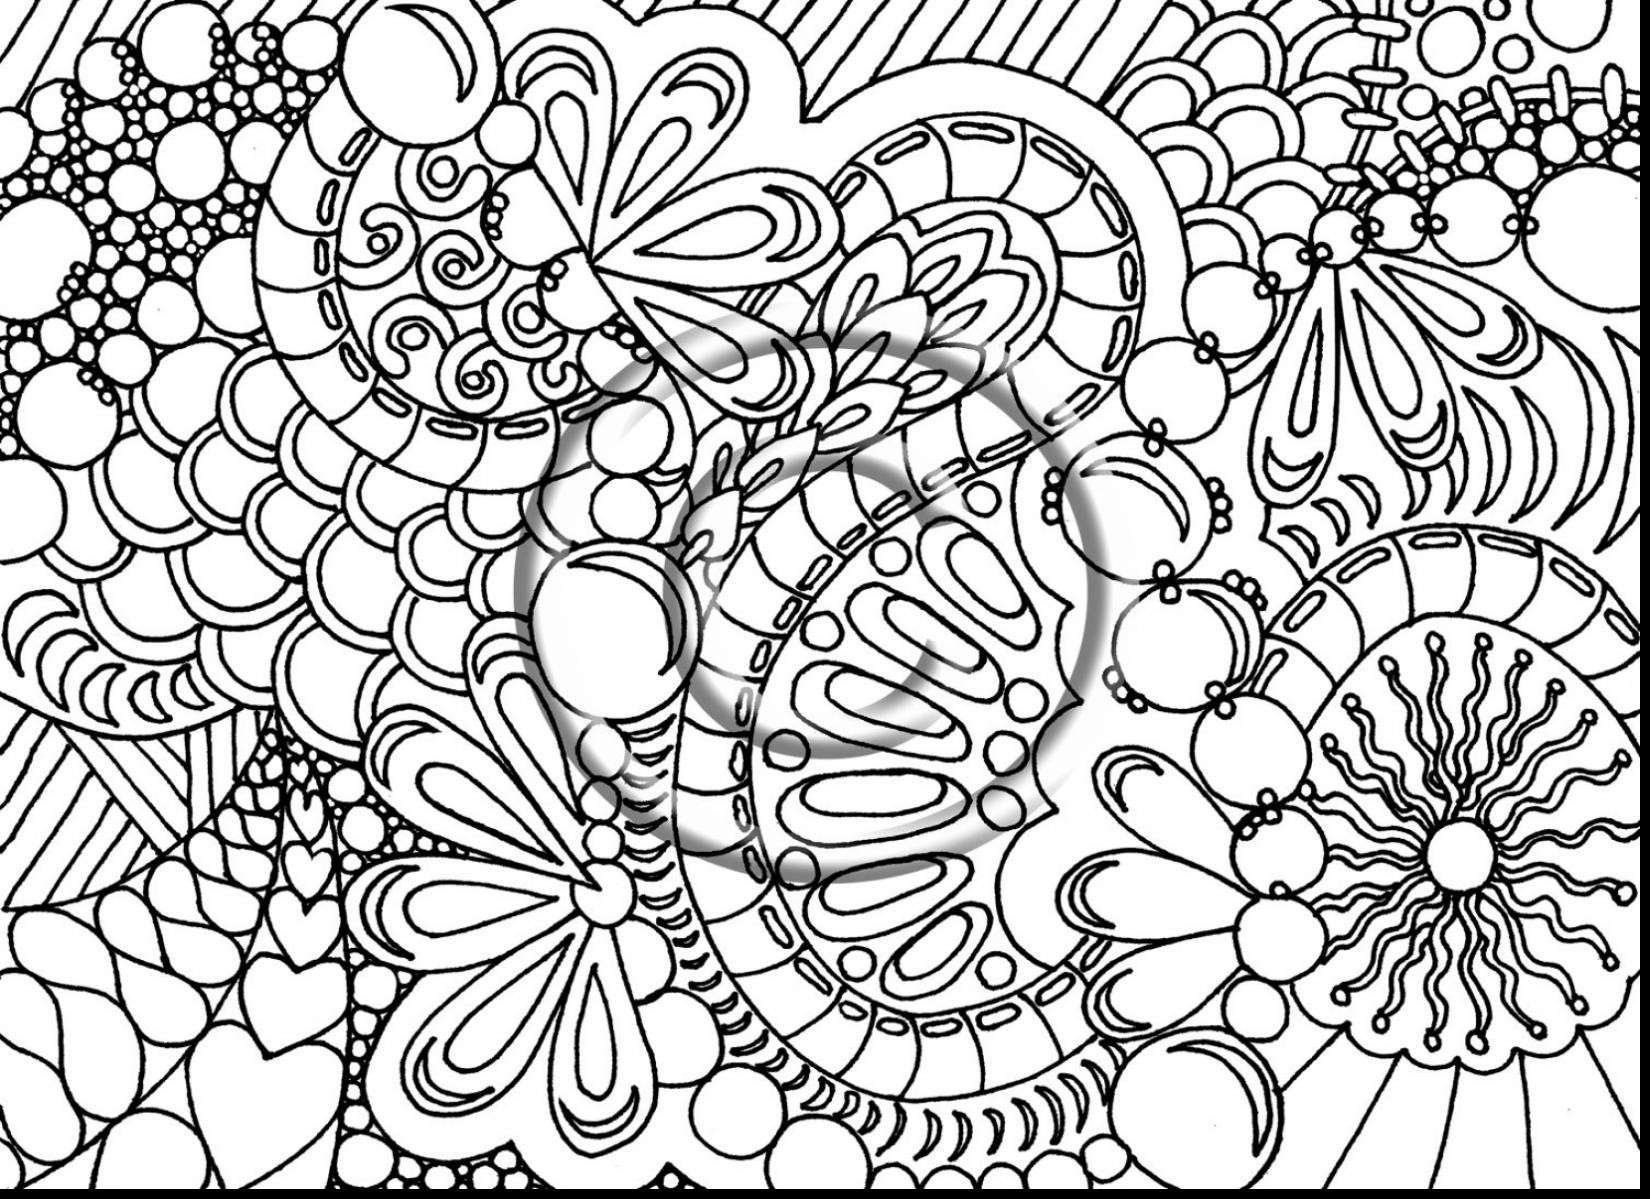 Christmas Coloring Hard With Difficult Pages For Adults To Print Free Printable